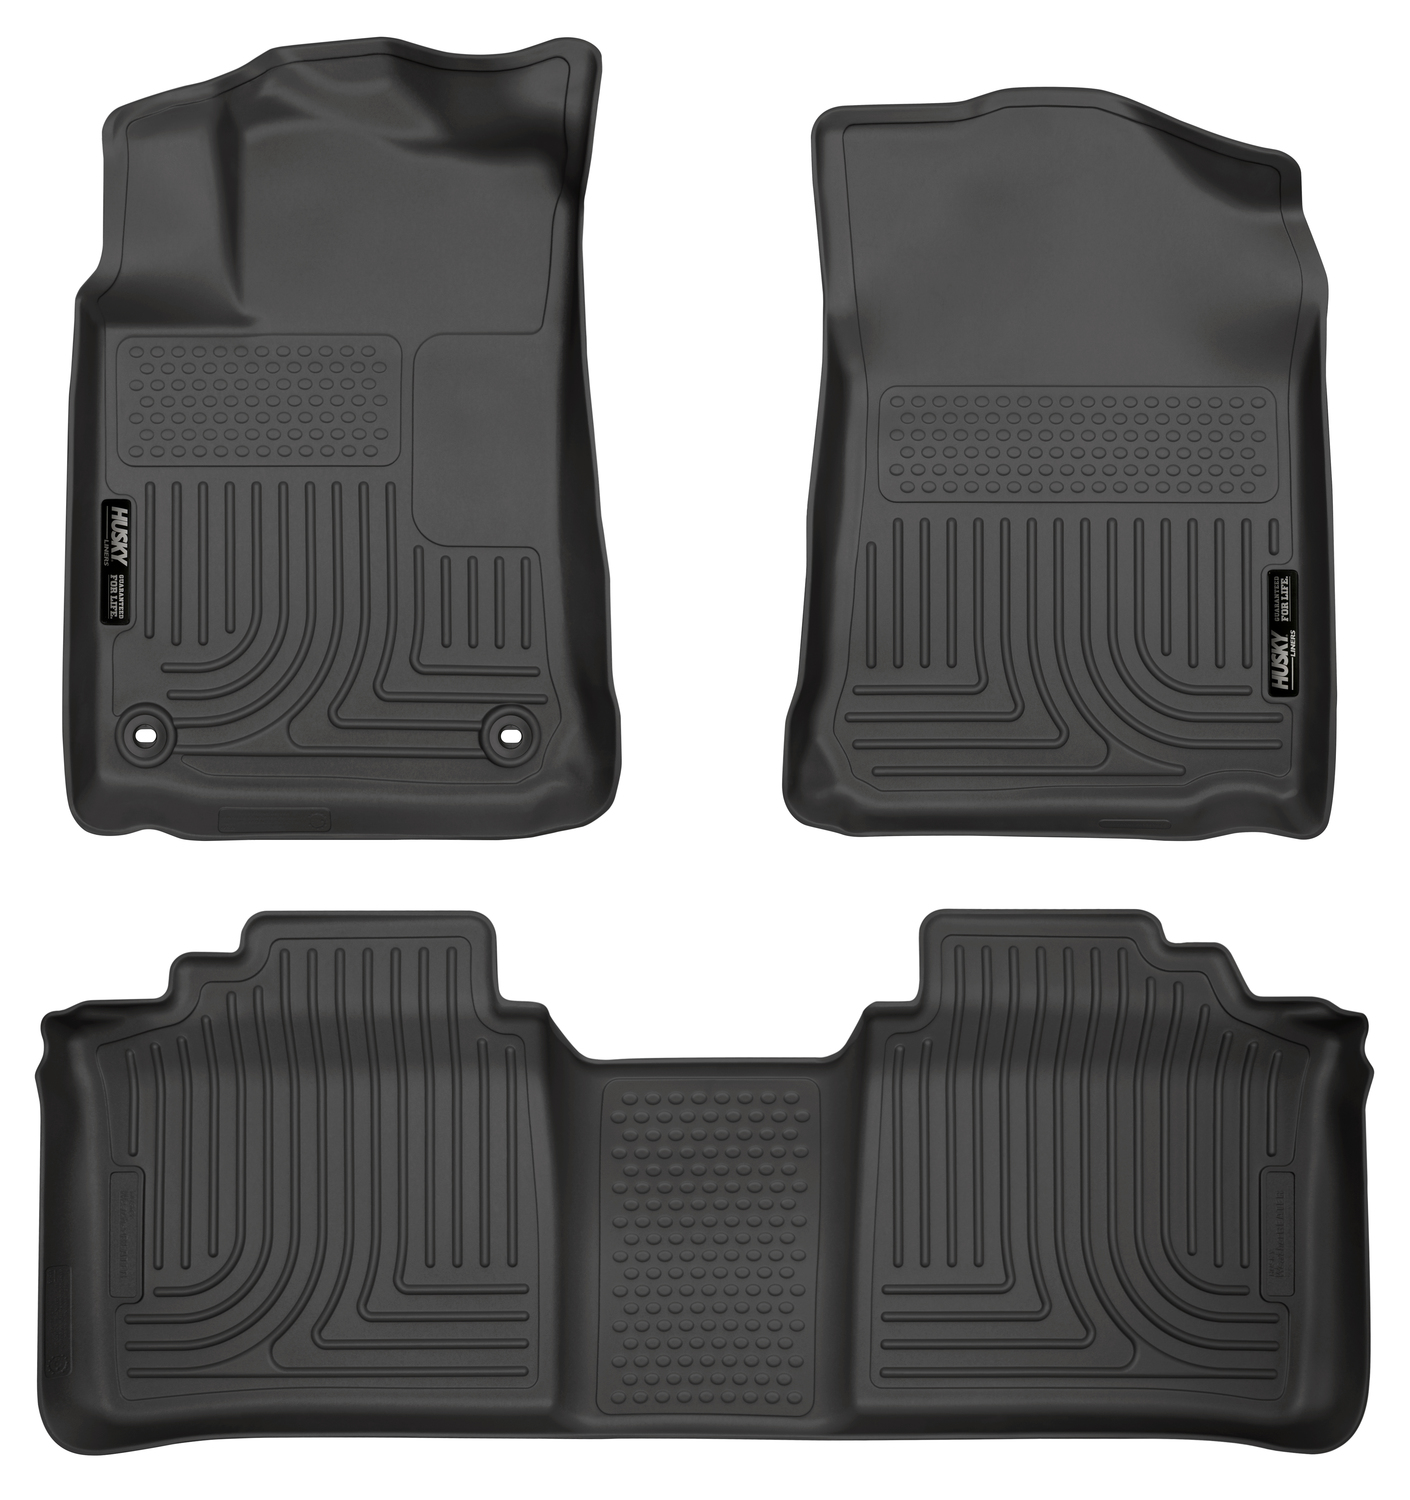 2014 Toyota Avalon Xle Premium: Husky Liners 98501 Weatherbeater Series Floor Liners 2013